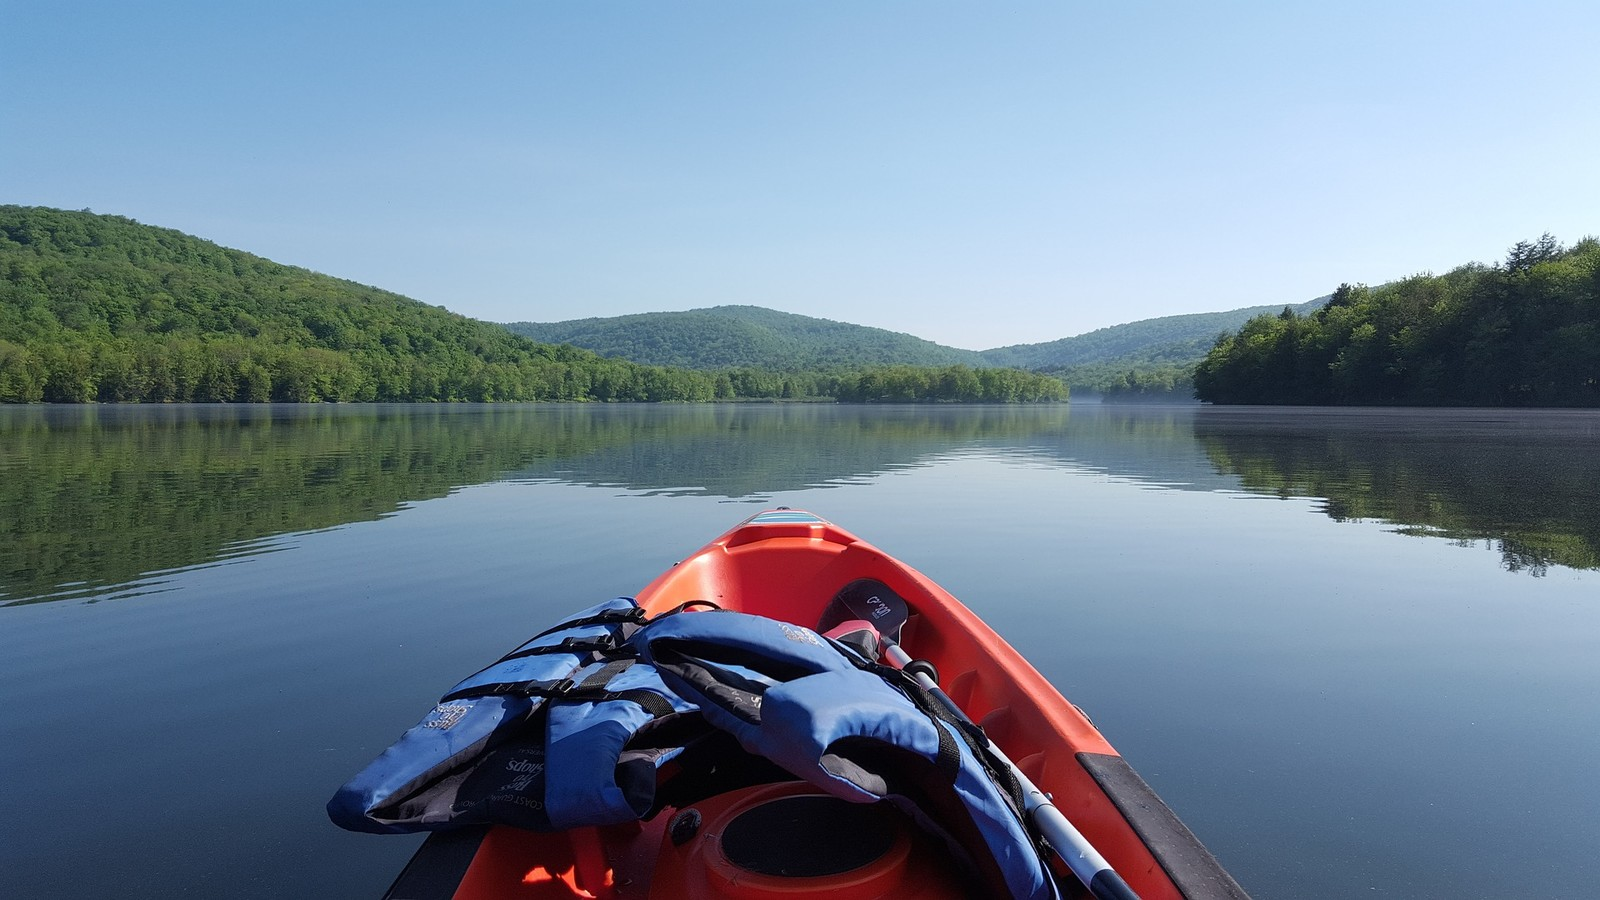 Kayaking in the Catskills